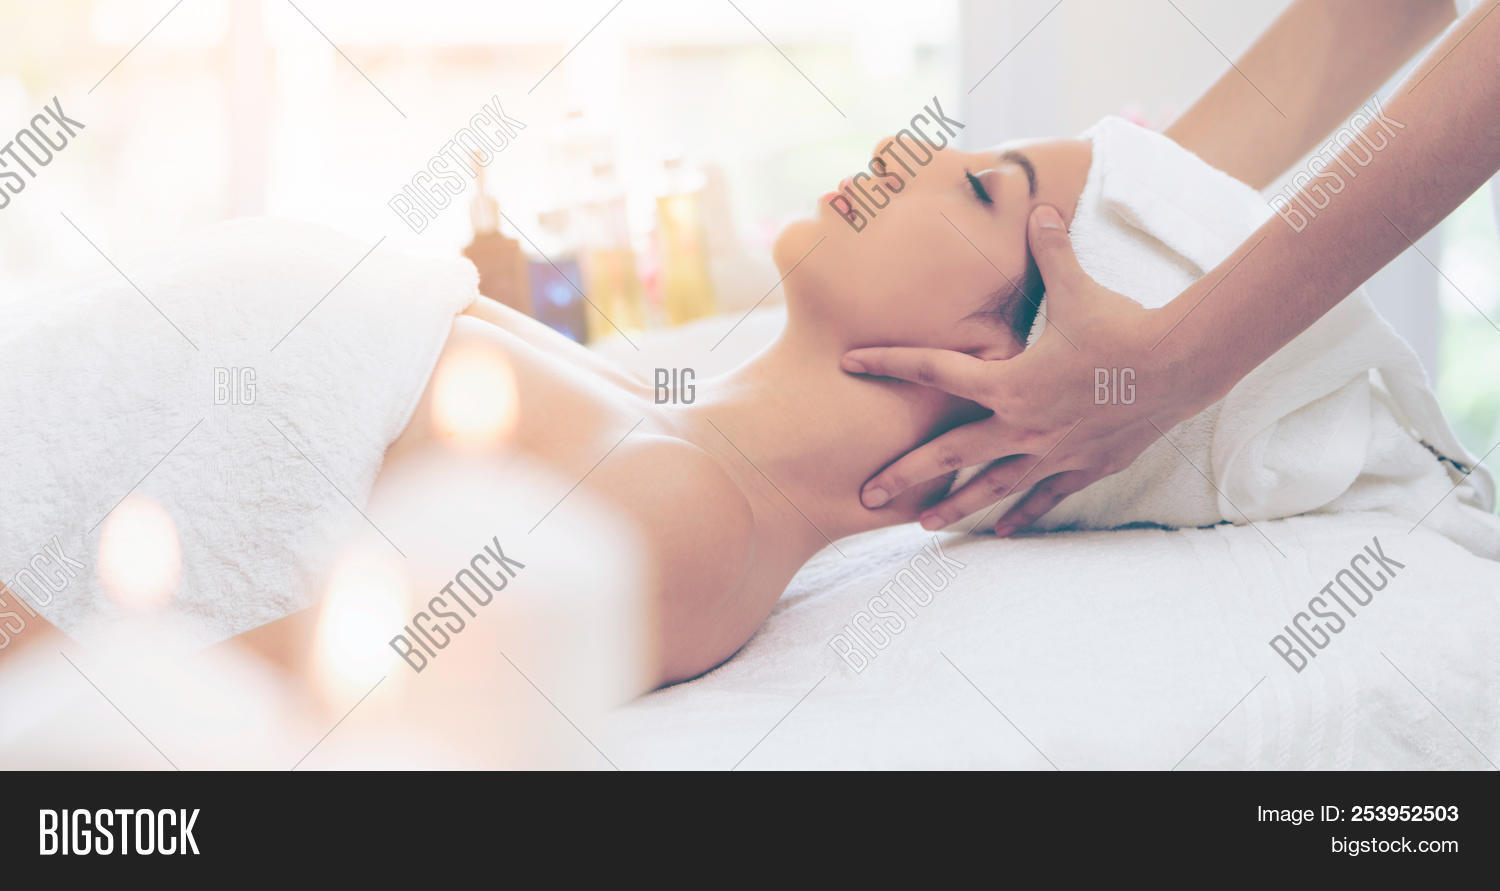 aromatherapy,beautiful,beauty,body,care,center,cosmetic,face,facial,female,fresh,girl,hand,head,health,healthcare,healthy,herbal,luxury,lying,massage,massager,massaging,medical,medicine,natural,nature,neck,palm,portrait,rejuvenate,relax,relaxation,relief,resort,salon,spa,stress,therapist,therapy,towel,tranquil,tranquility,treatment,wellbeing,wellness,white,women